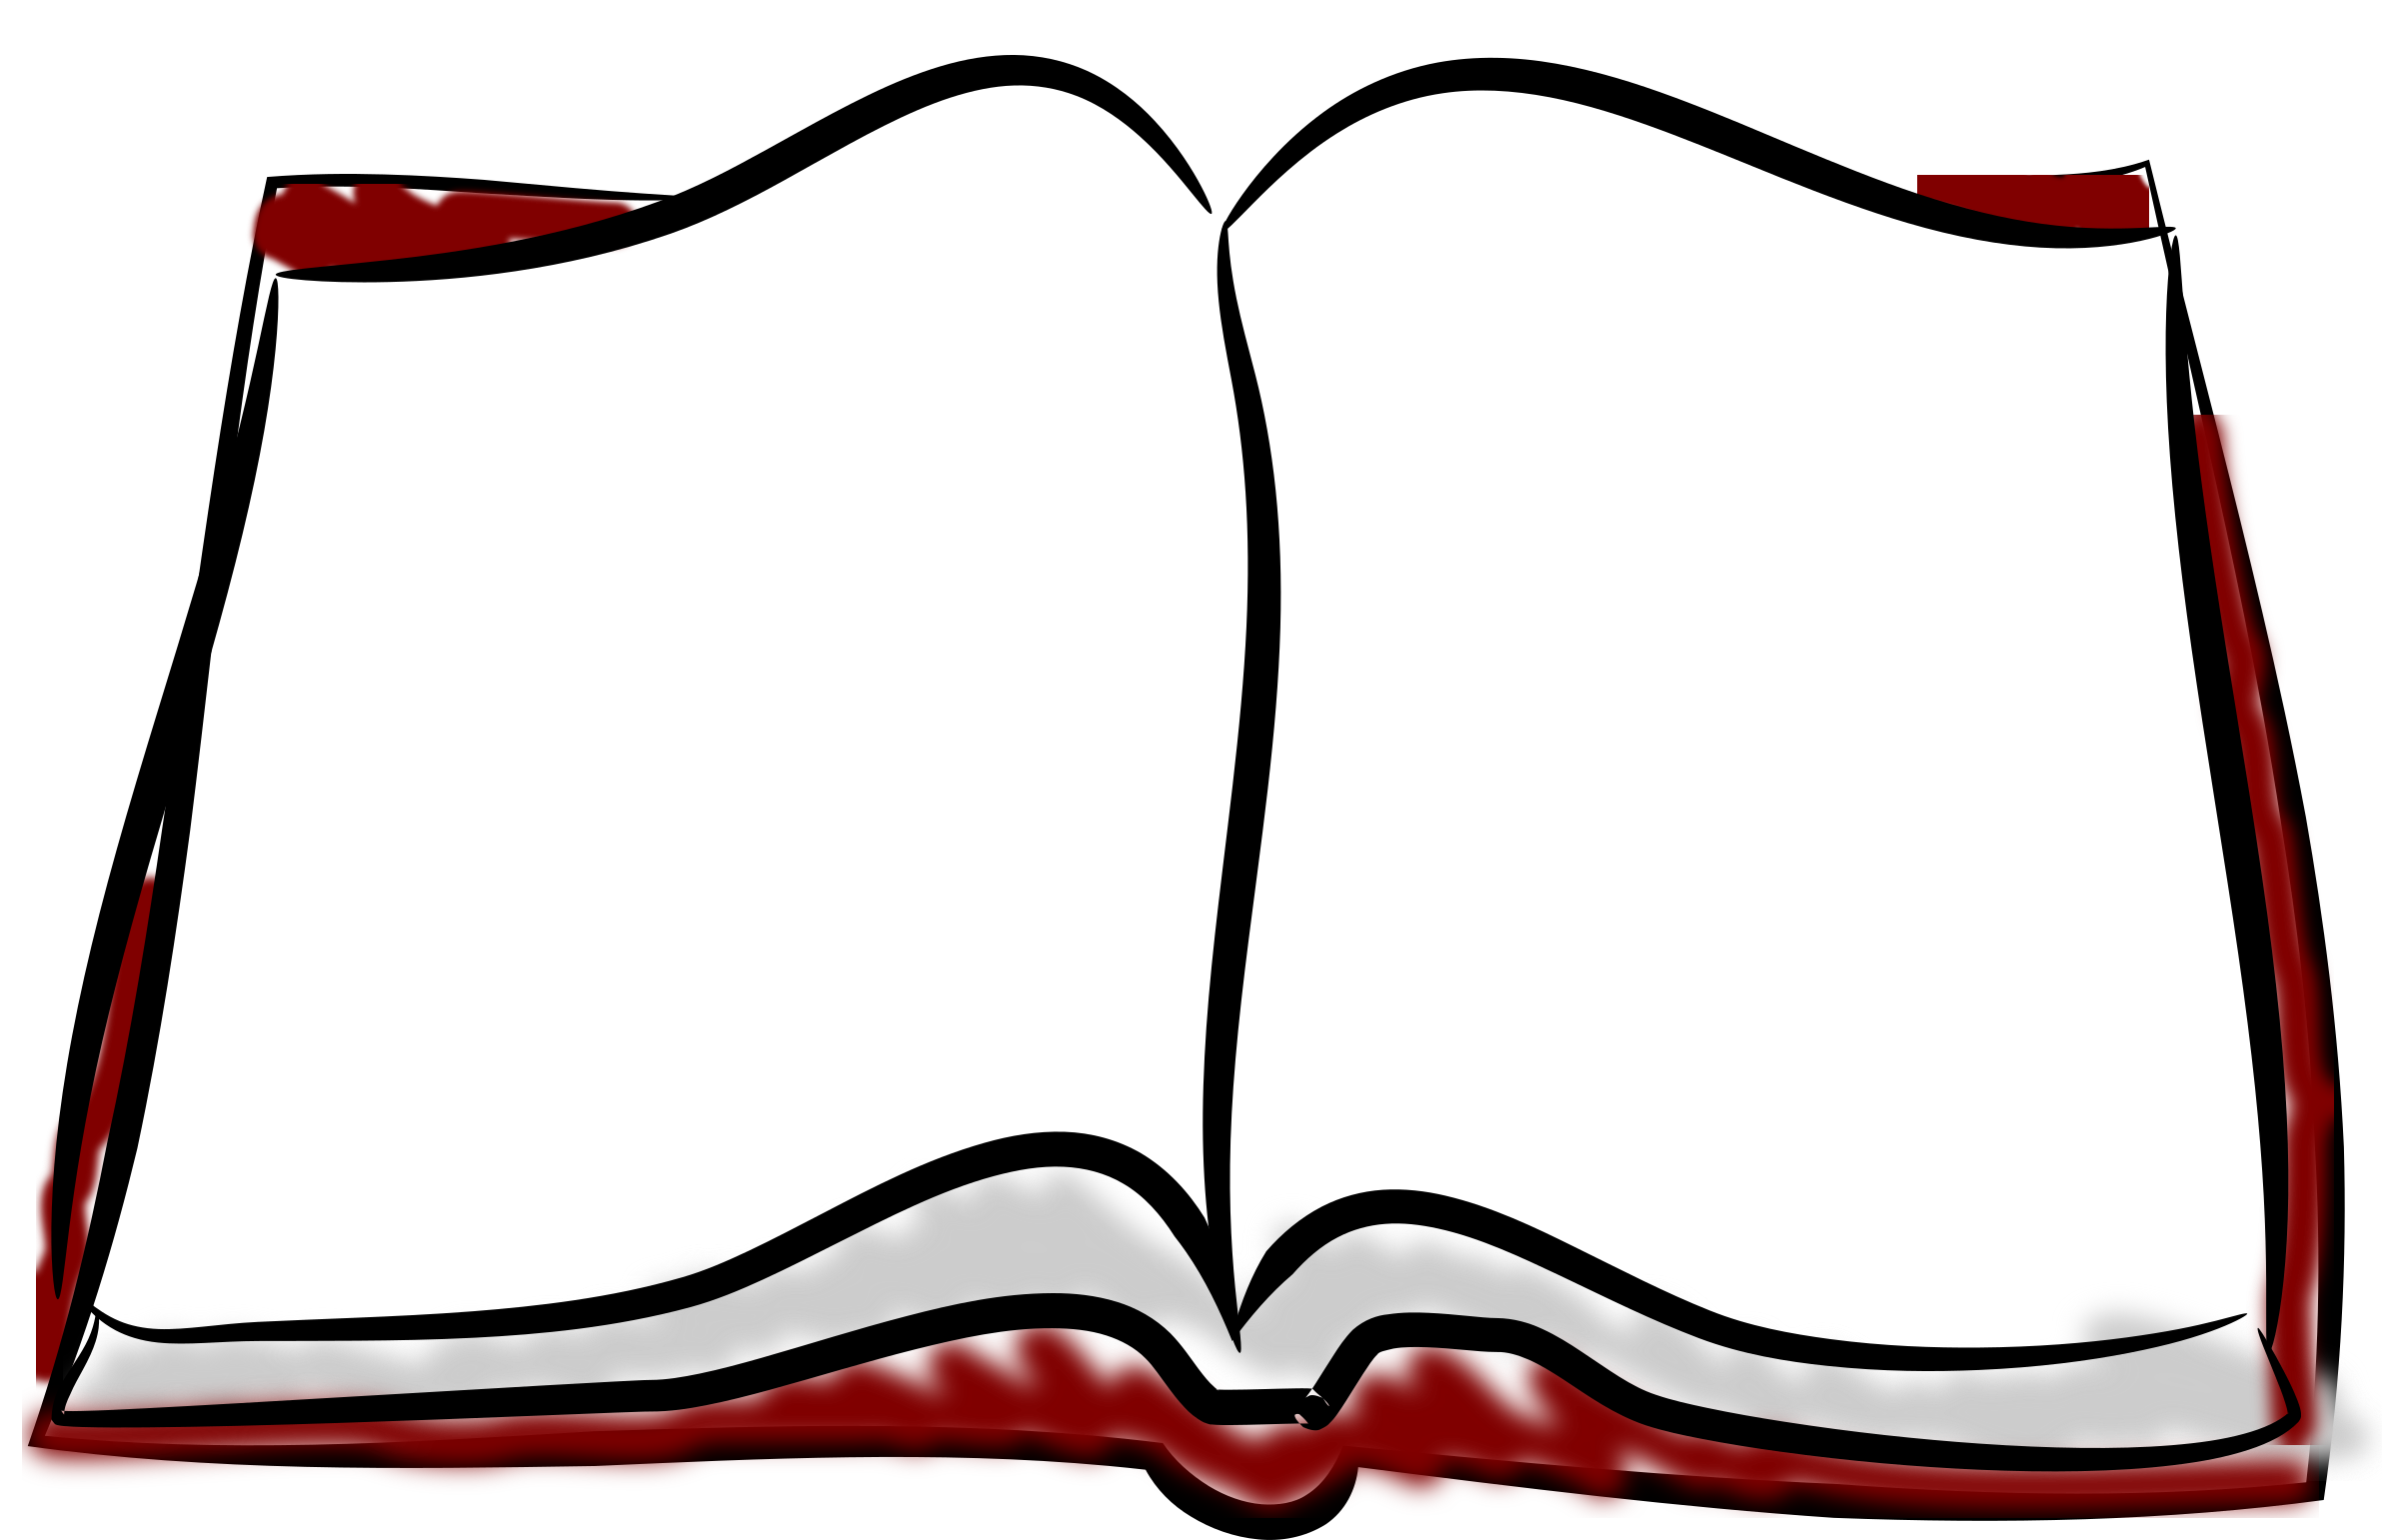 Book sketched image png. Textbook clipart big